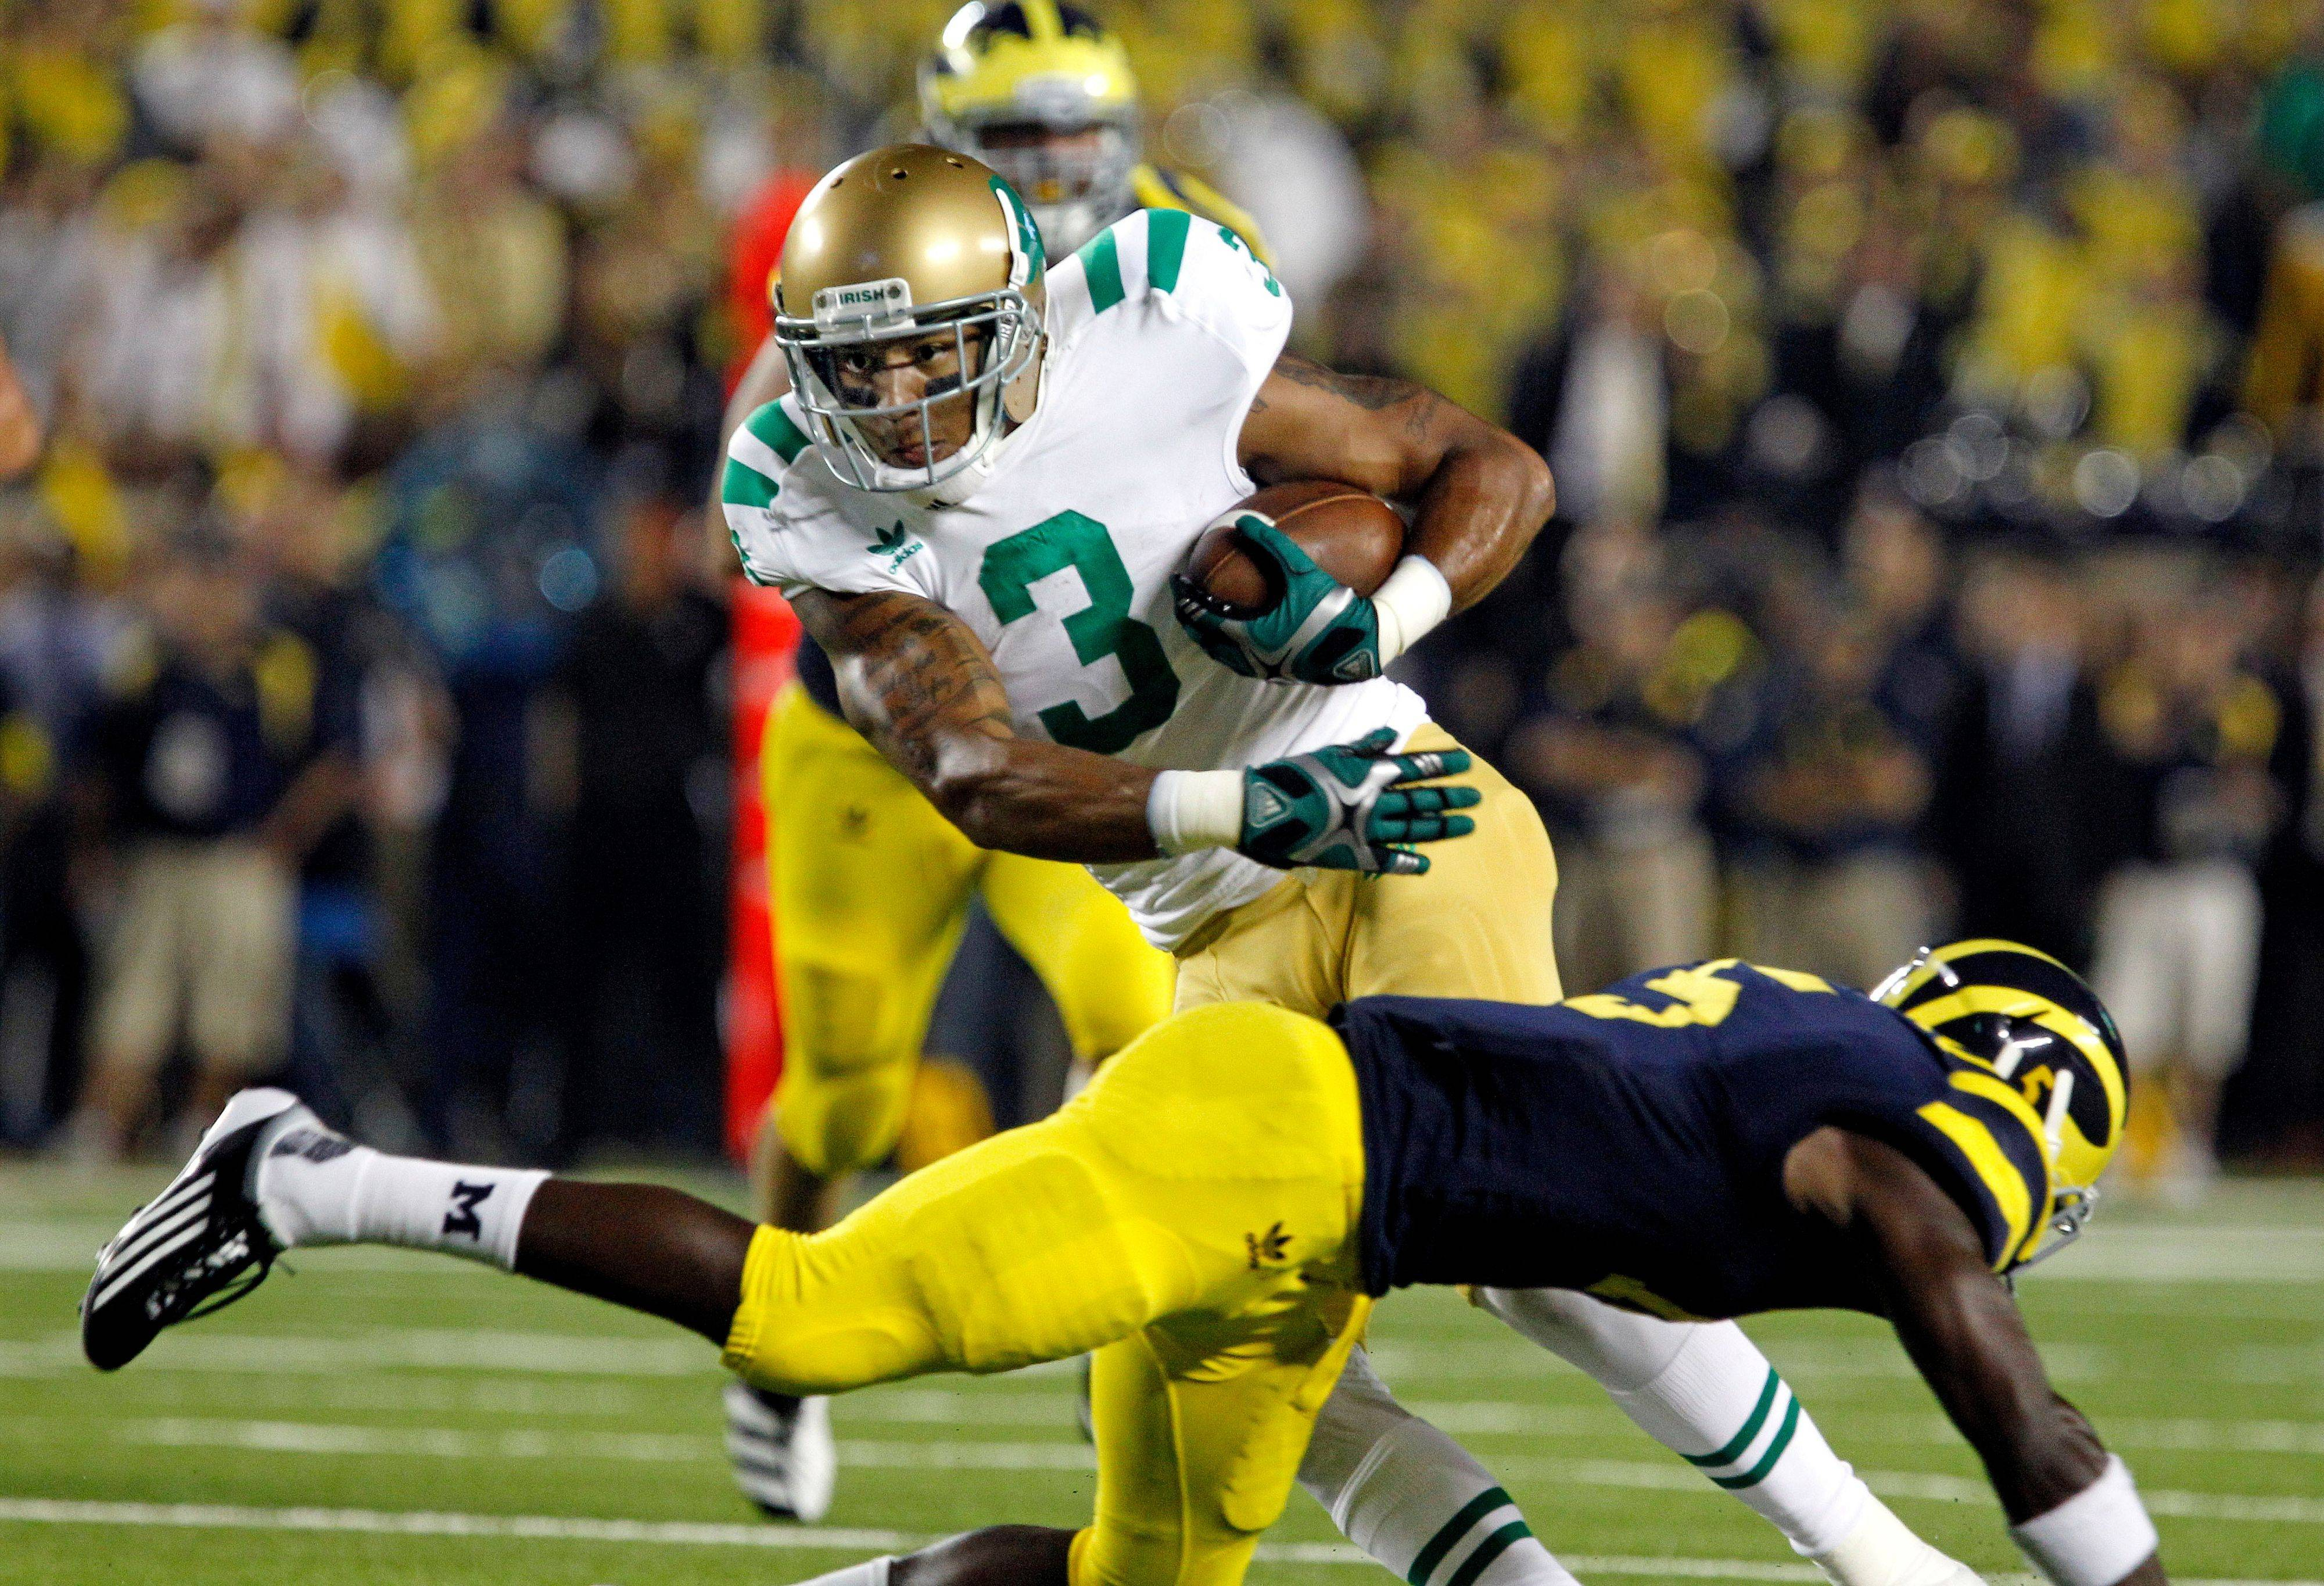 Notre Dame wide receiver Michael Floyd avoids a tackle from Michigan cornerback Courtney Avery in the second quarter Saturday night.